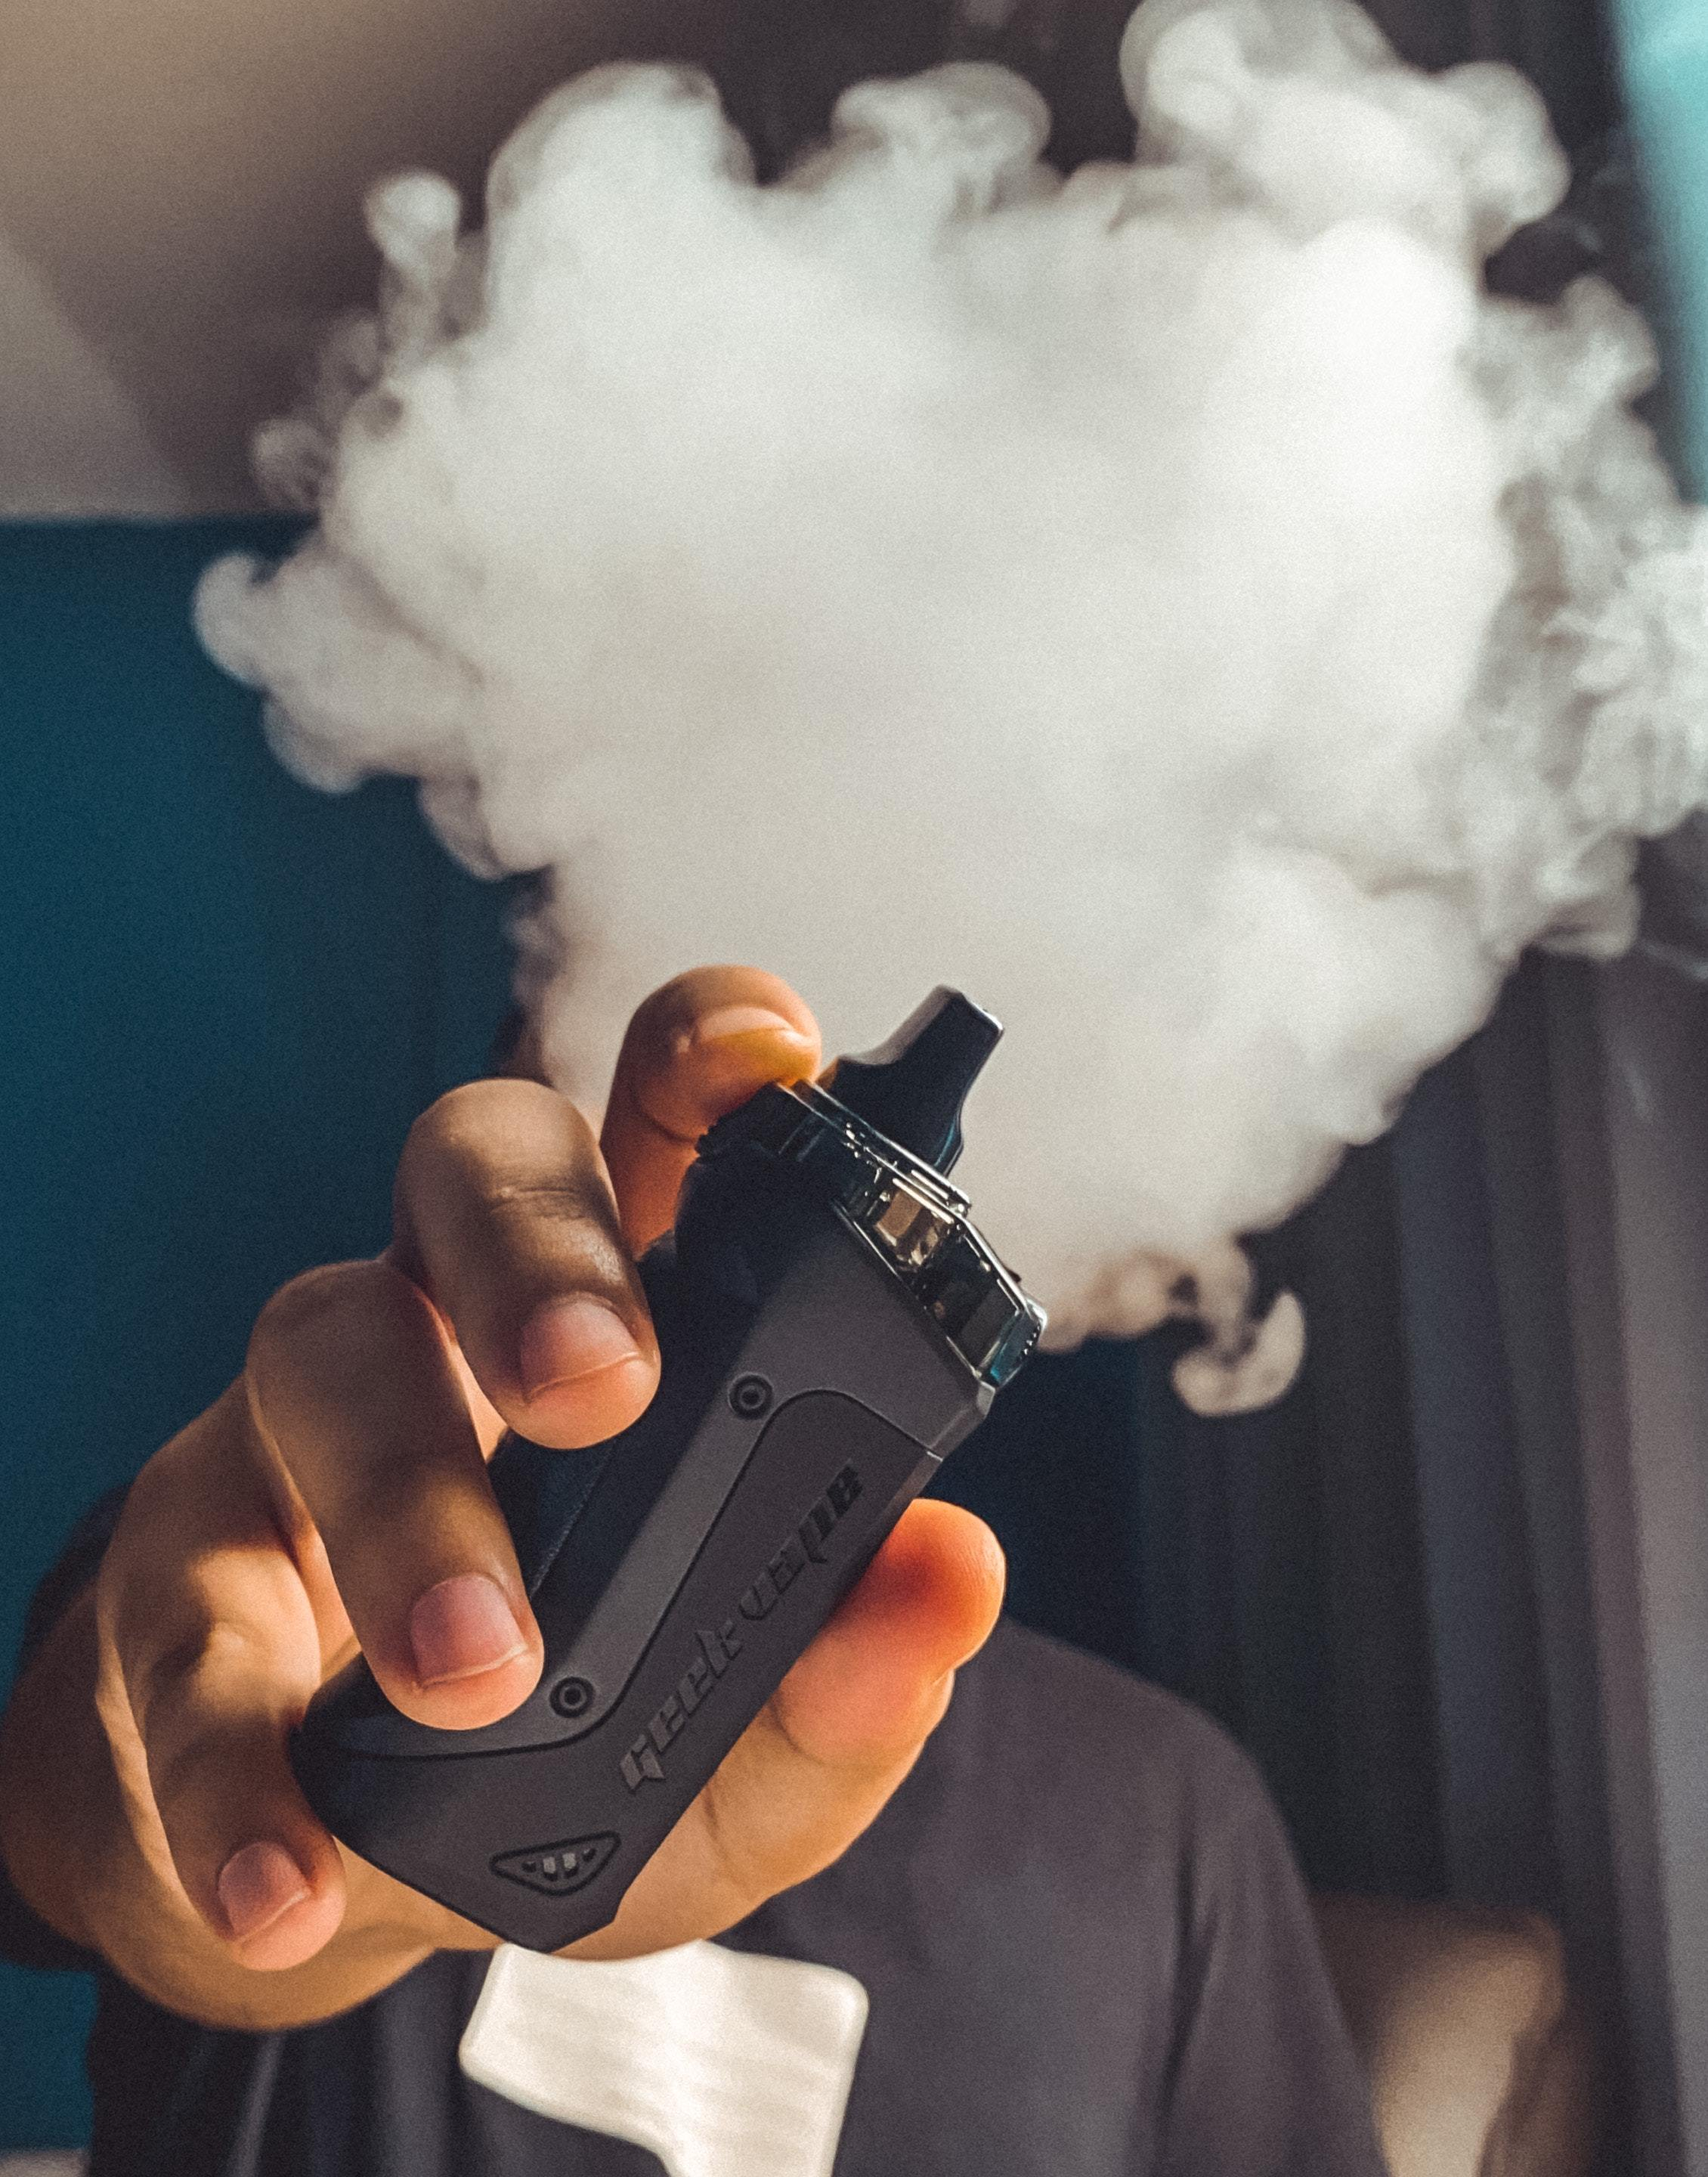 Vaping 101: A Quick Guide to the Popular Vape Juices - V8PR.uk